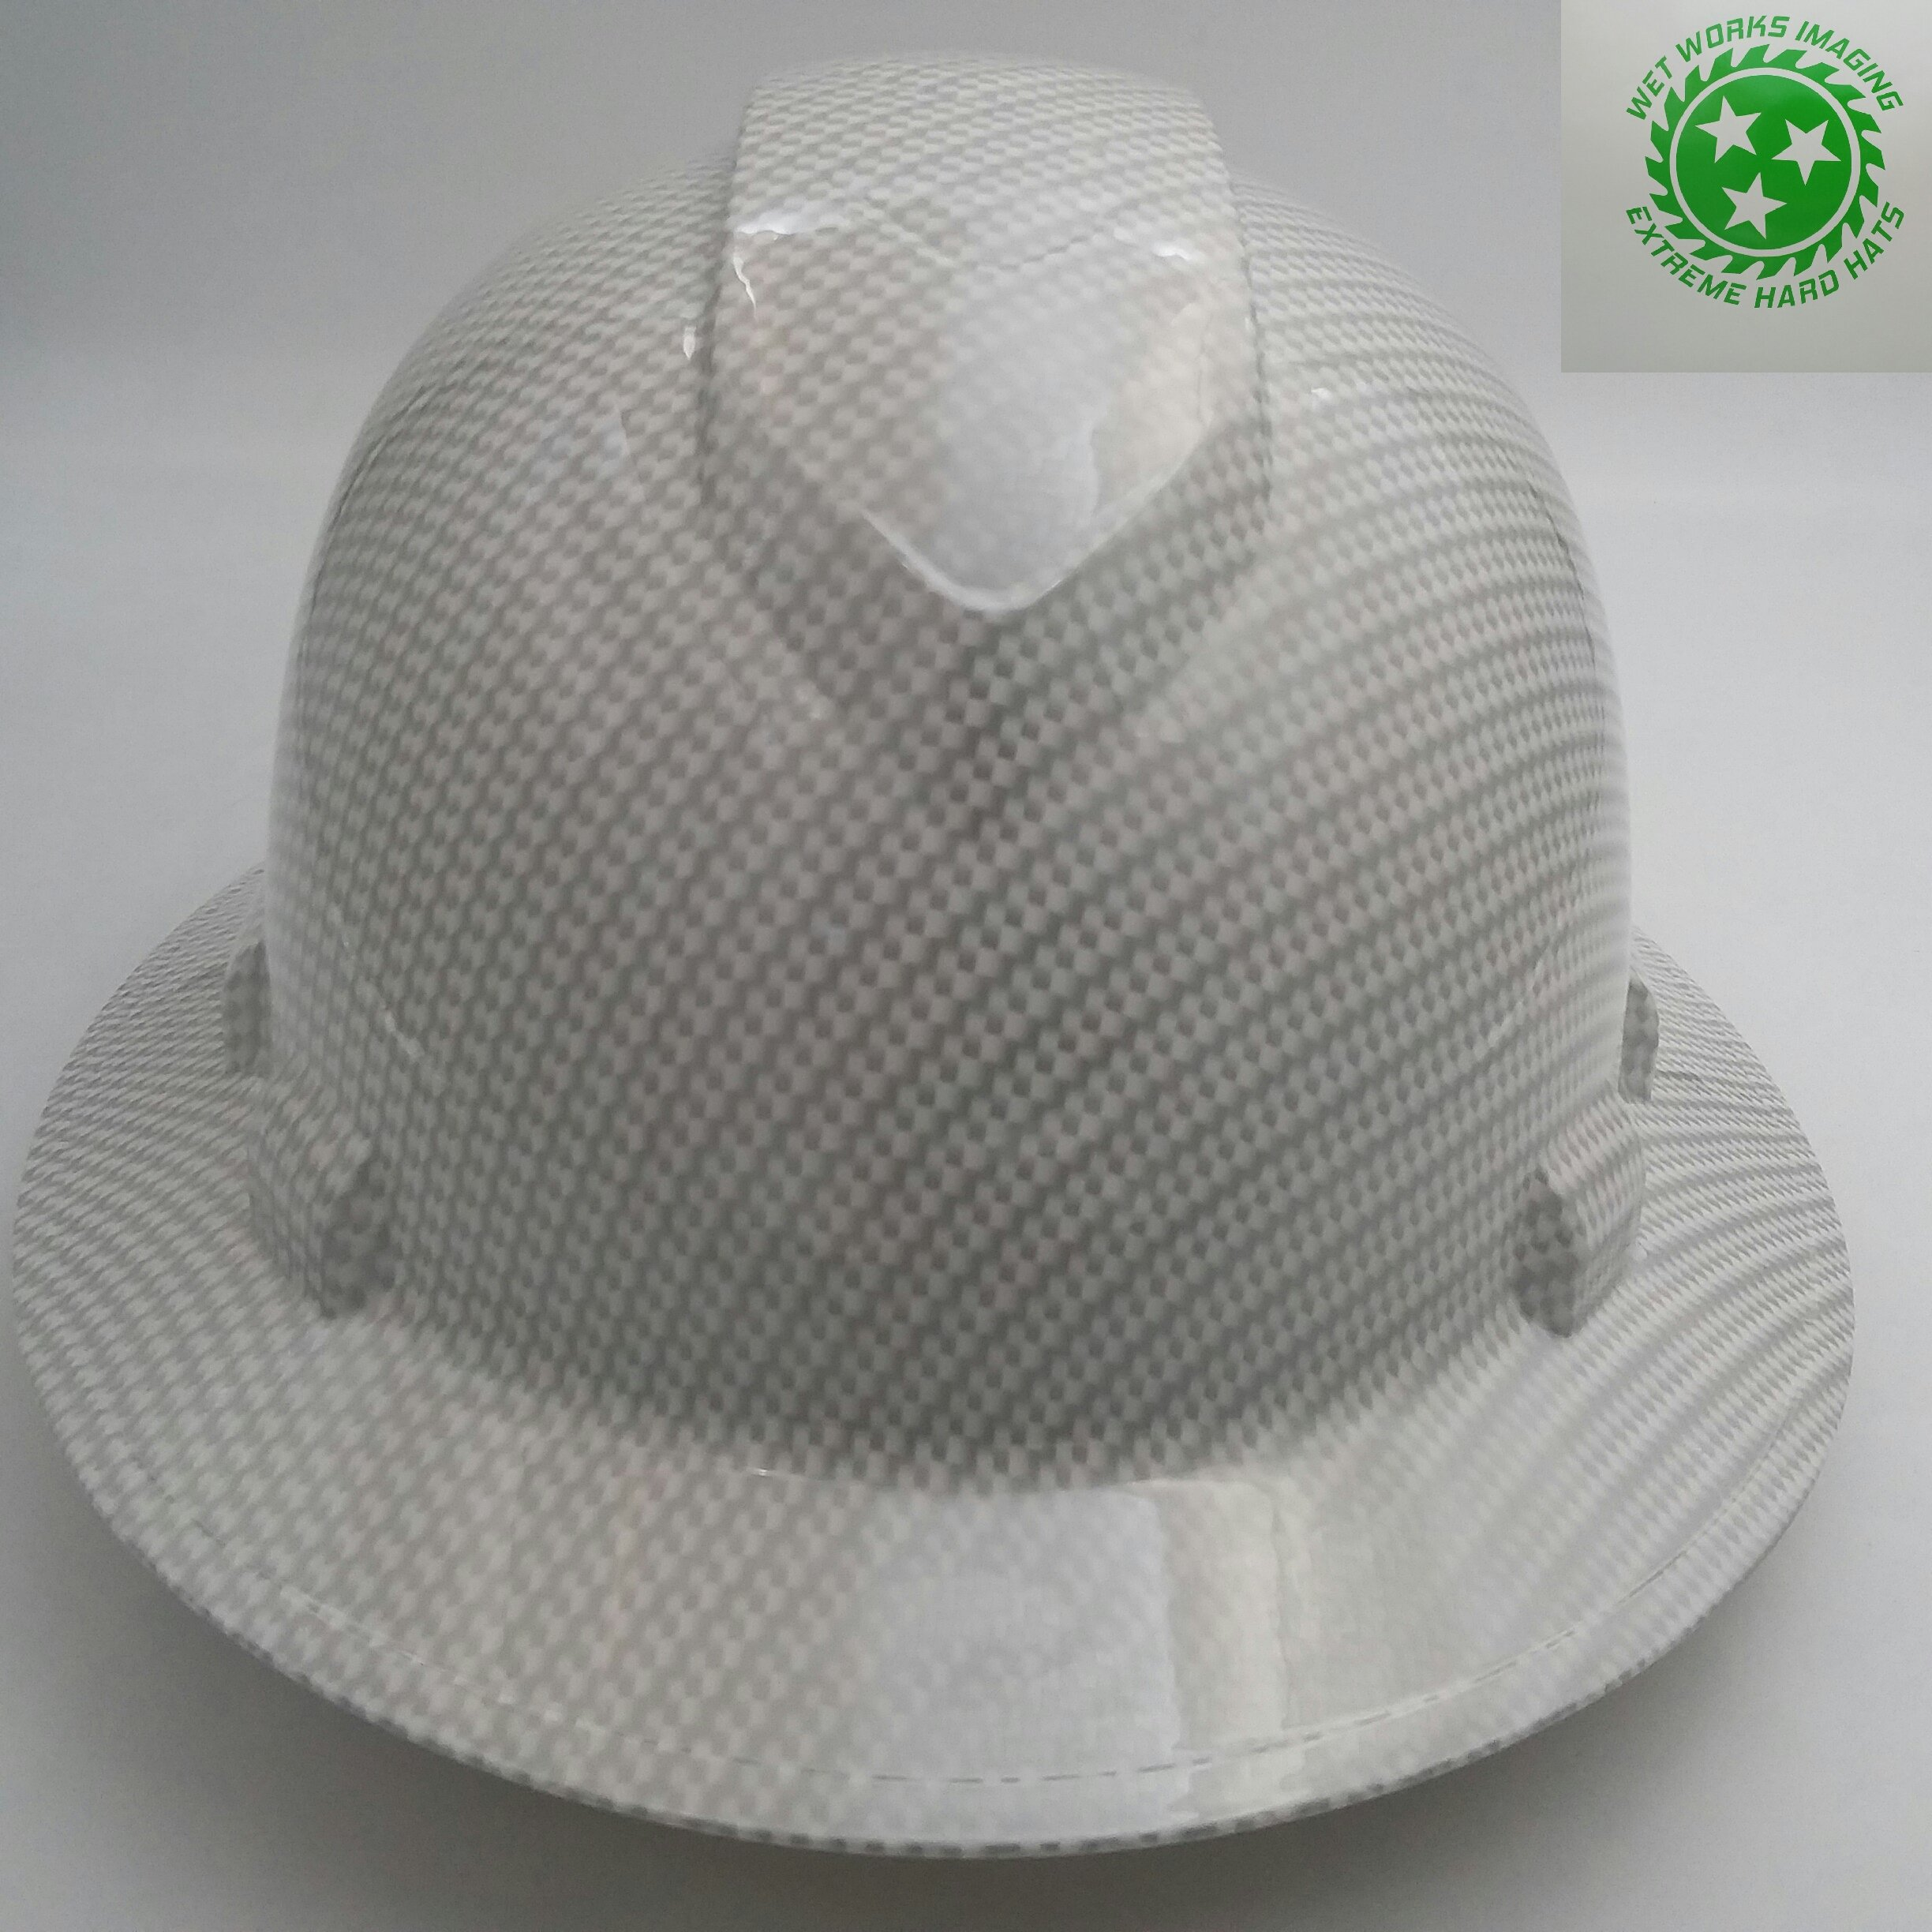 Wet Works Imaging Customized Pyramex Full Brim White Carbon Fiber Hat with Ratcheting Suspension Hydro Dipped